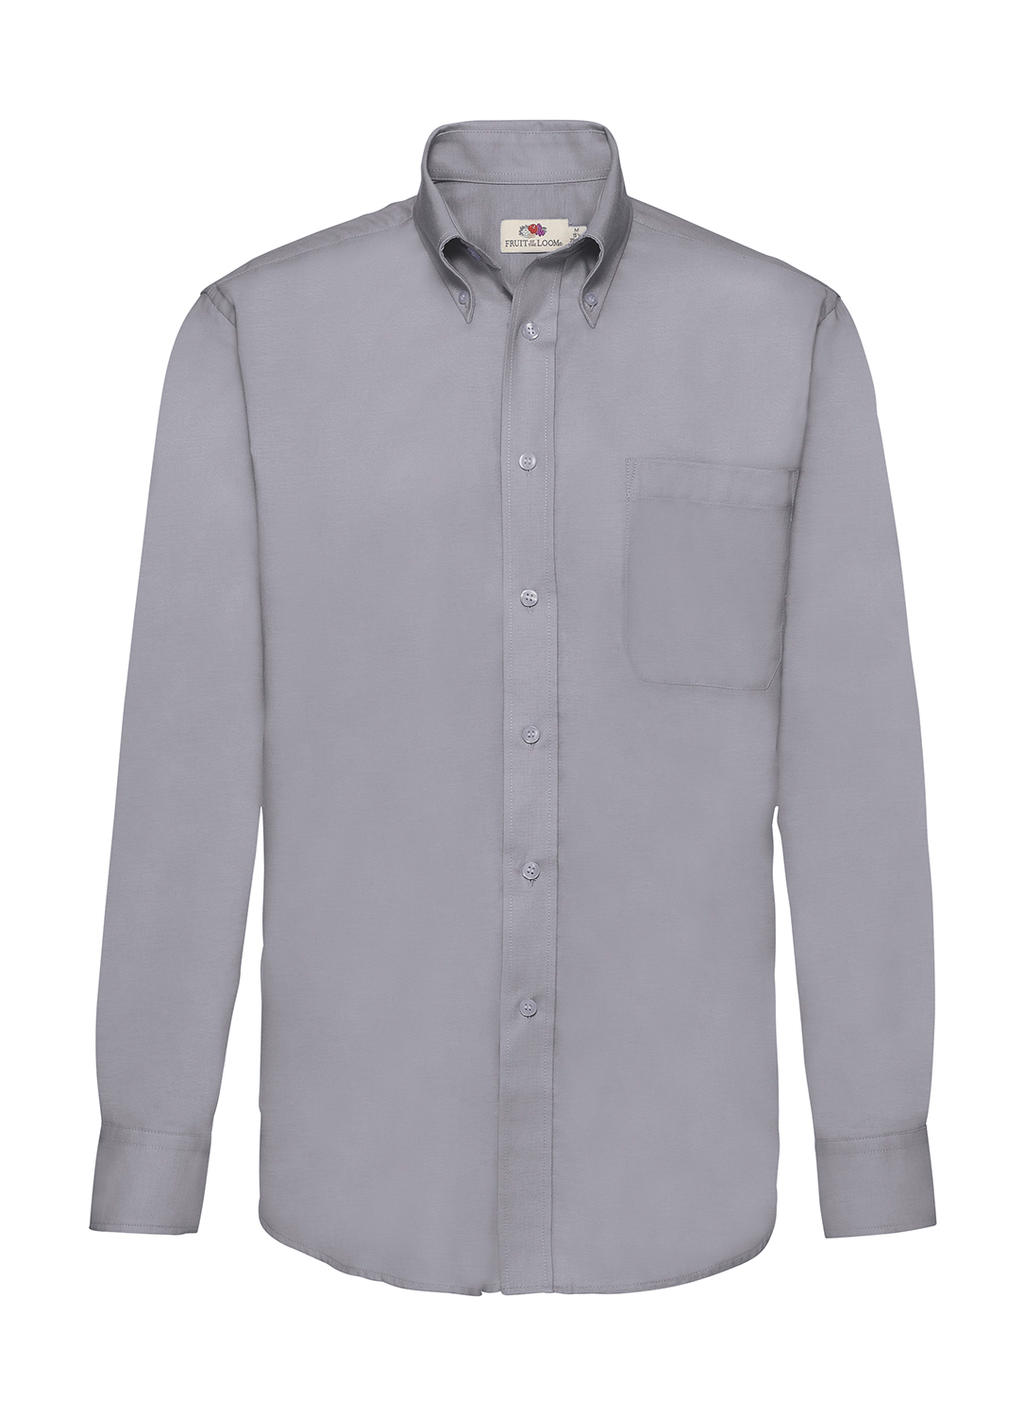 Fruit of the Loom Oxford Shirt Long Sleeve